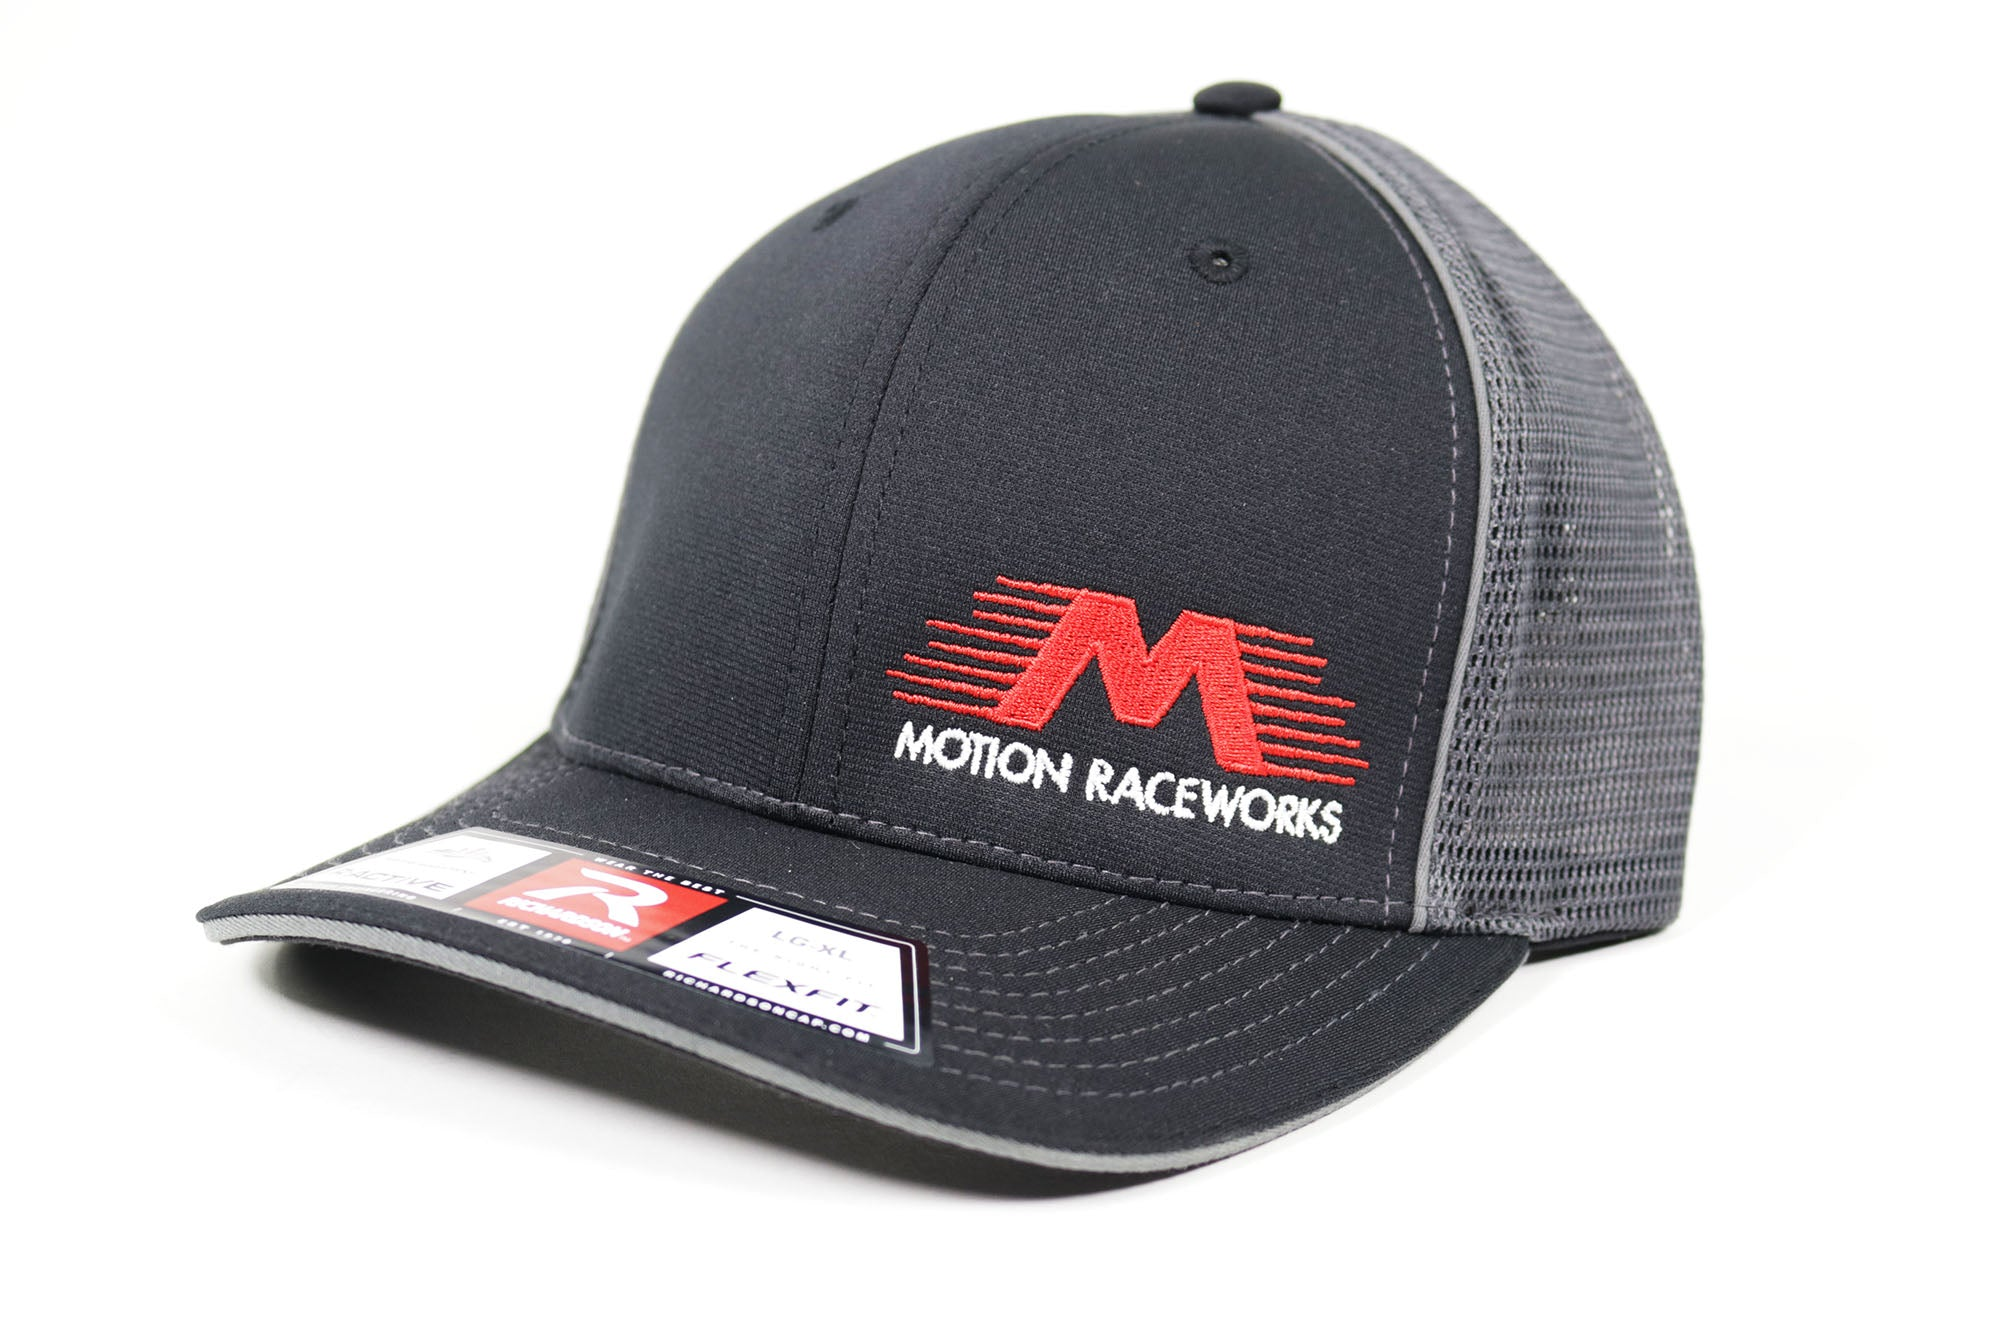 Black and Gray Flex Fit Mesh Trucker Hat S/M & L/XL-Motion Raceworks-Motion Raceworks